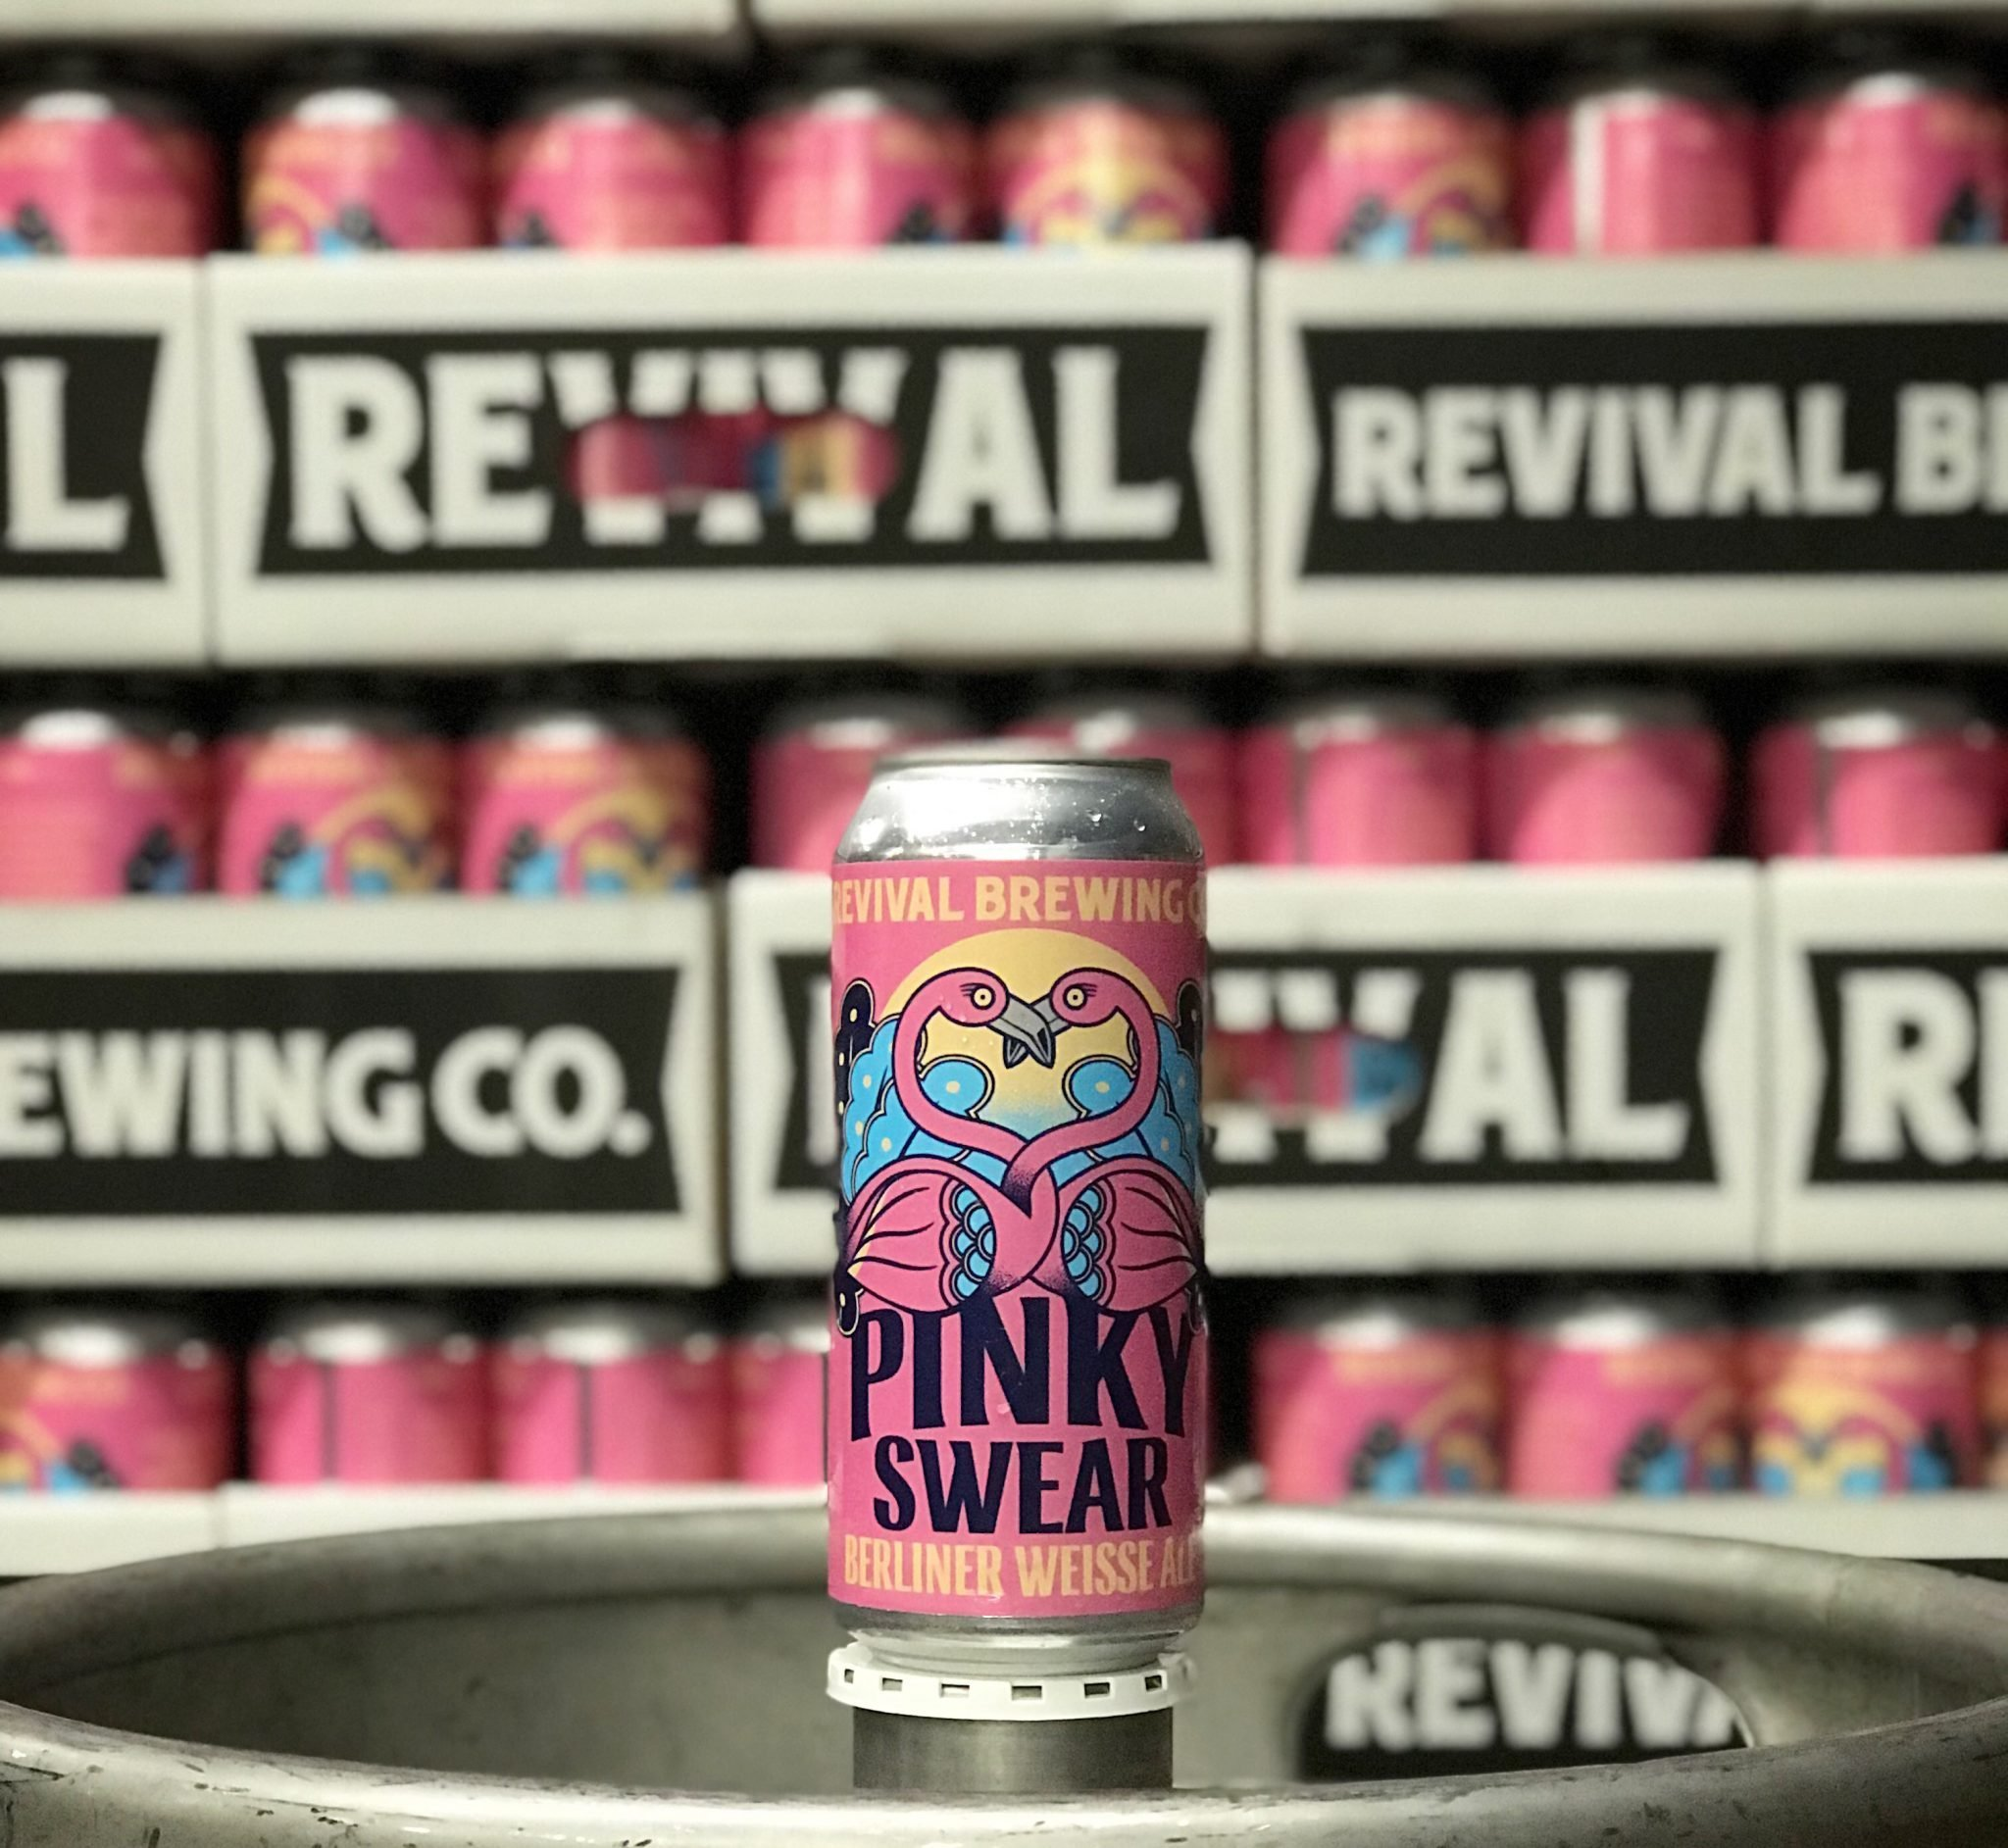 Revival Brewing Company Pinky Swear